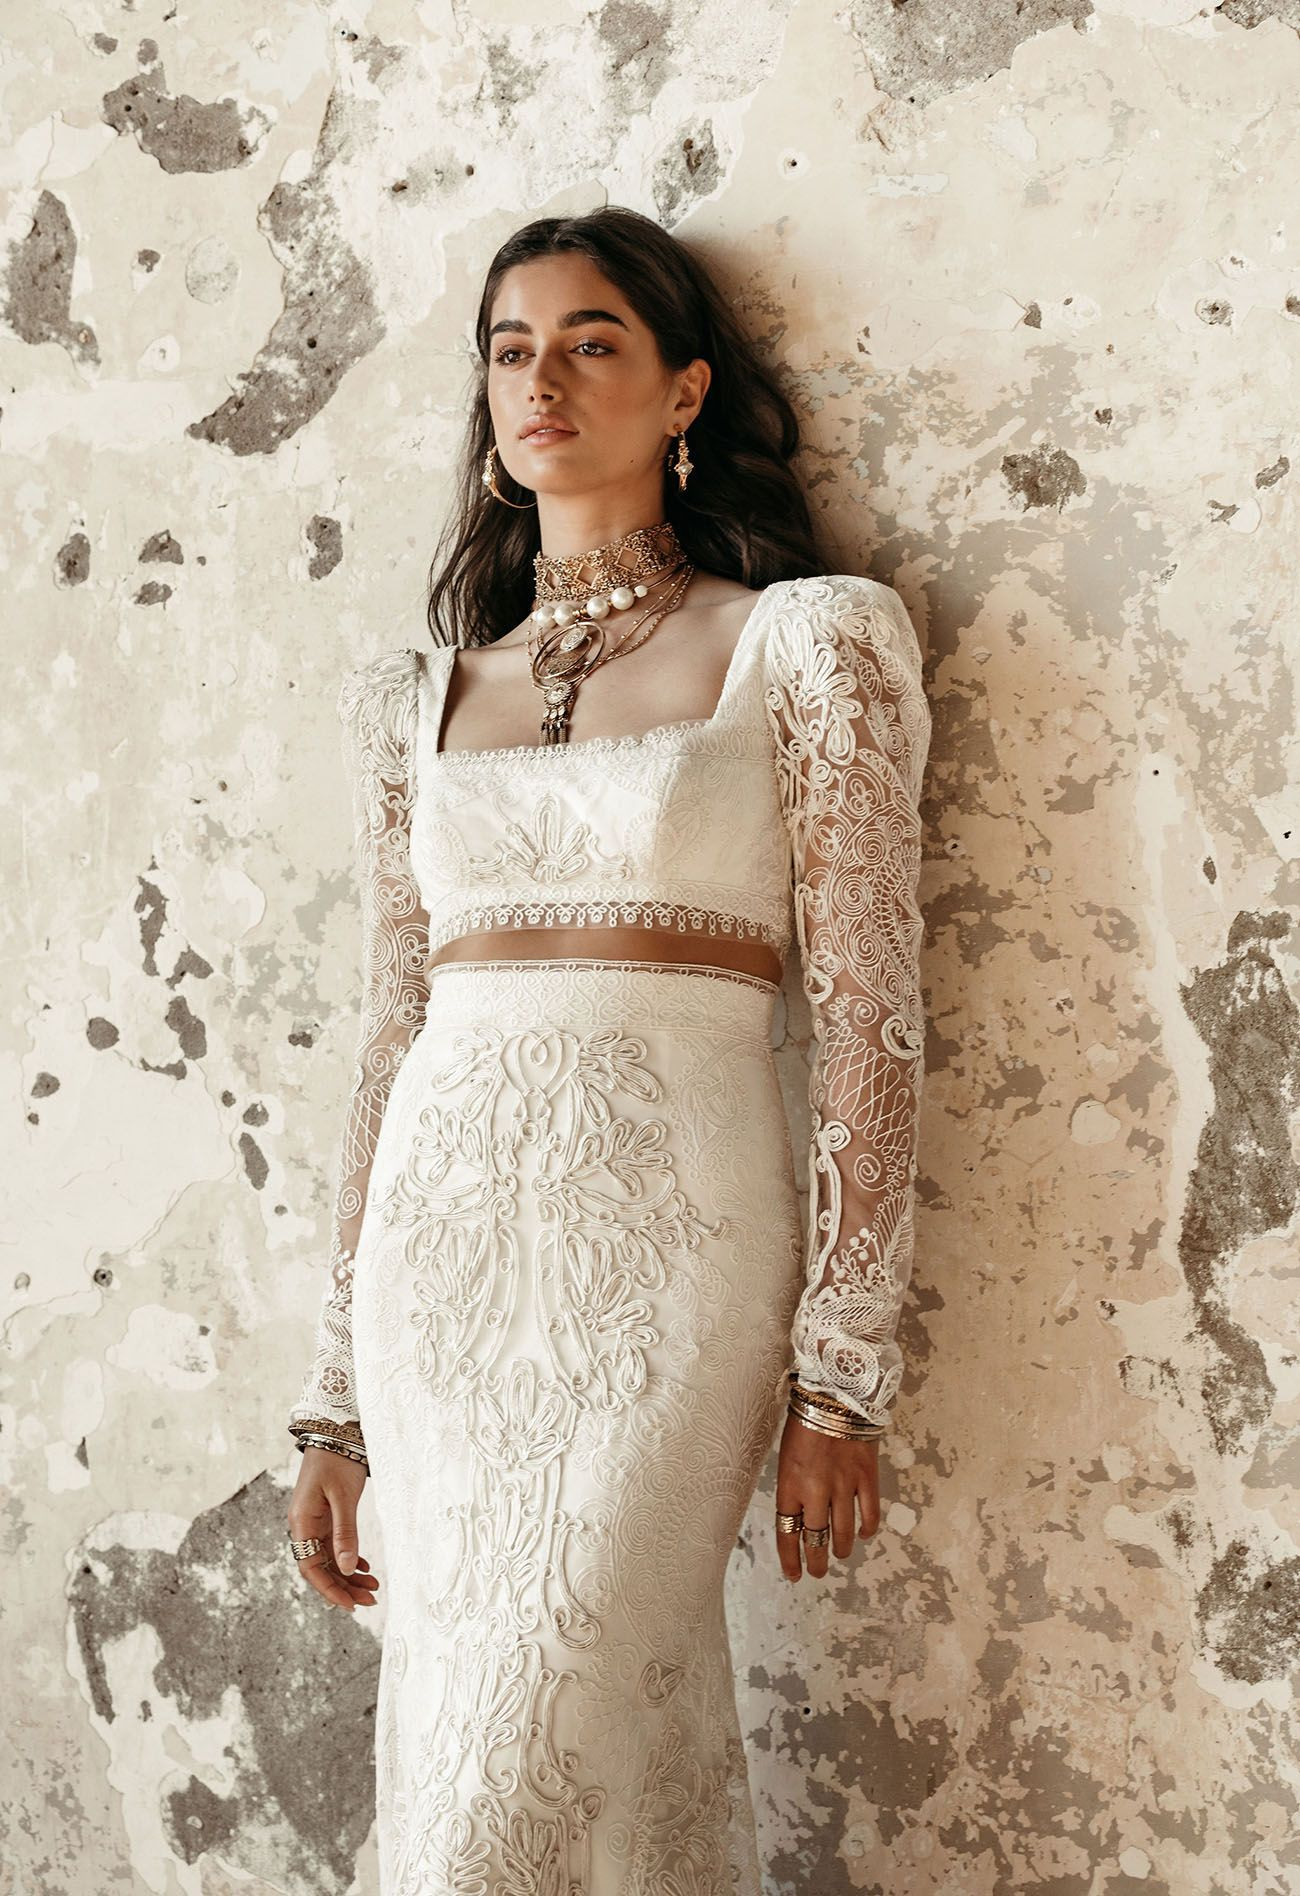 Rue De Seine 2020 Collection Exclusive First Look At Golden Rhapsody In 2020 Wedding Dress Shopping White Beach Wedding Dresses Bohemian Wedding Dresses